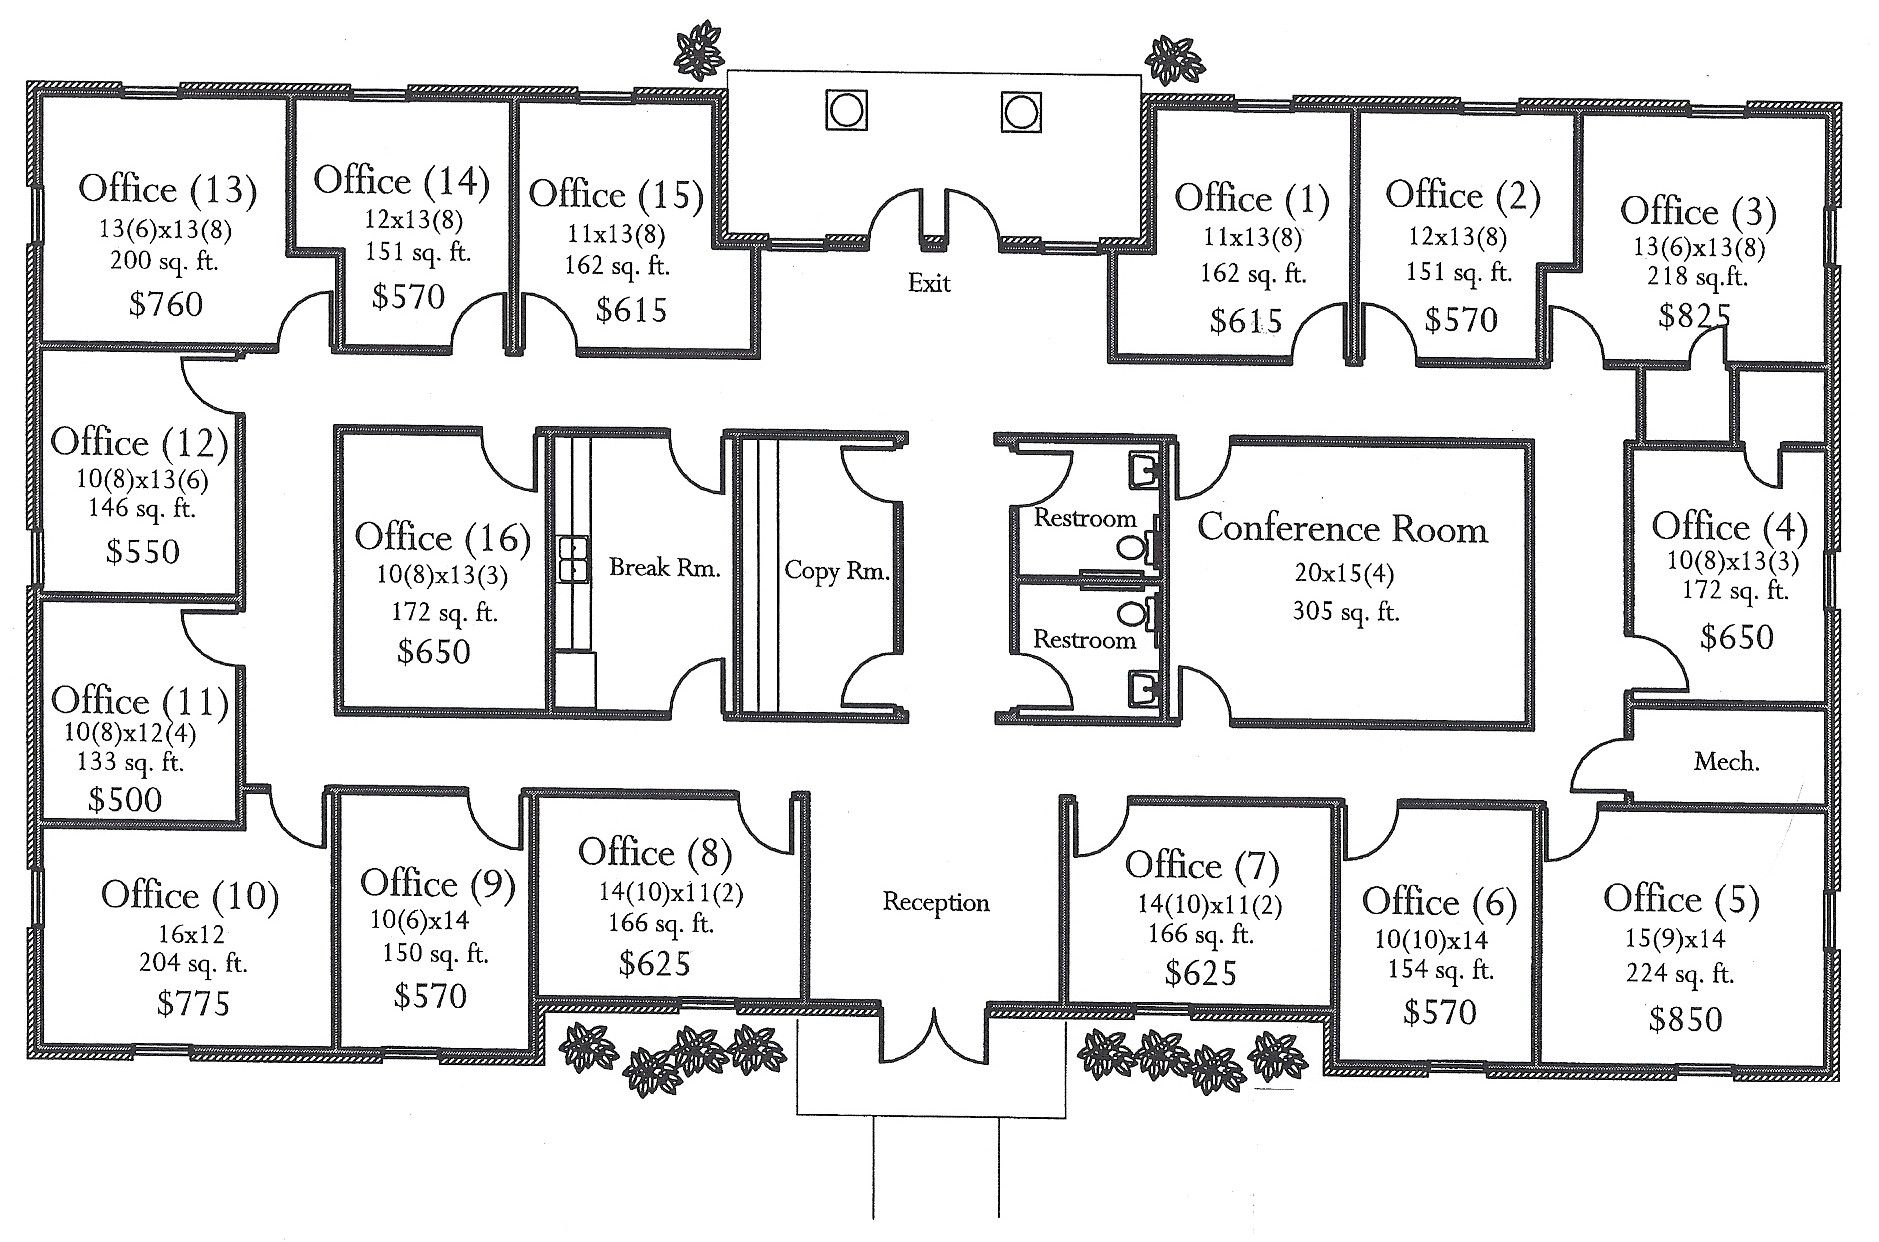 office layout plans solution conceptdrawcom home office